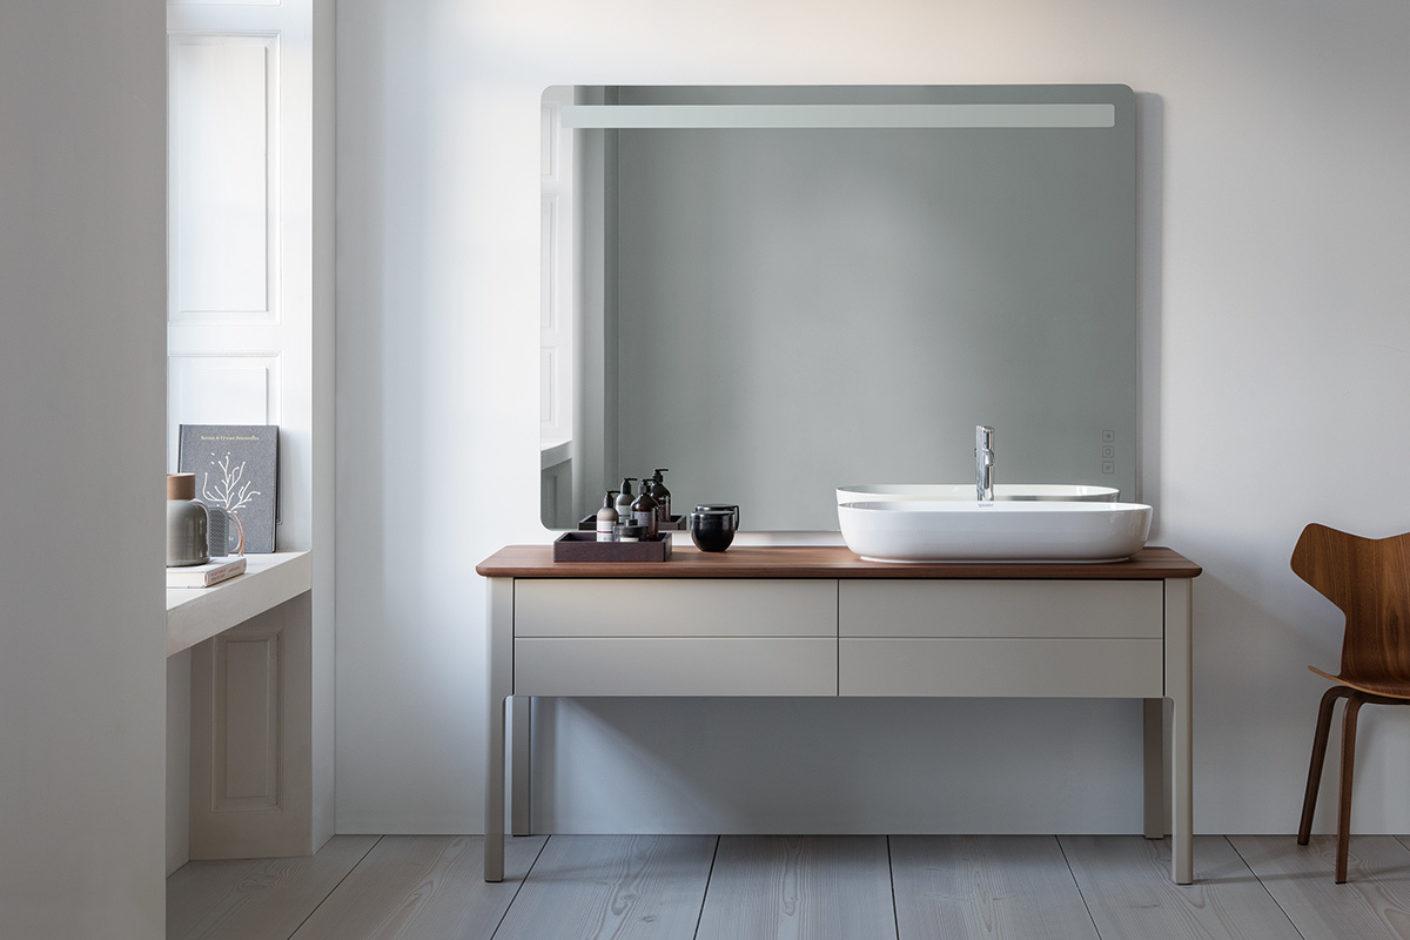 Washstand in gray and wood, modern country cottage look